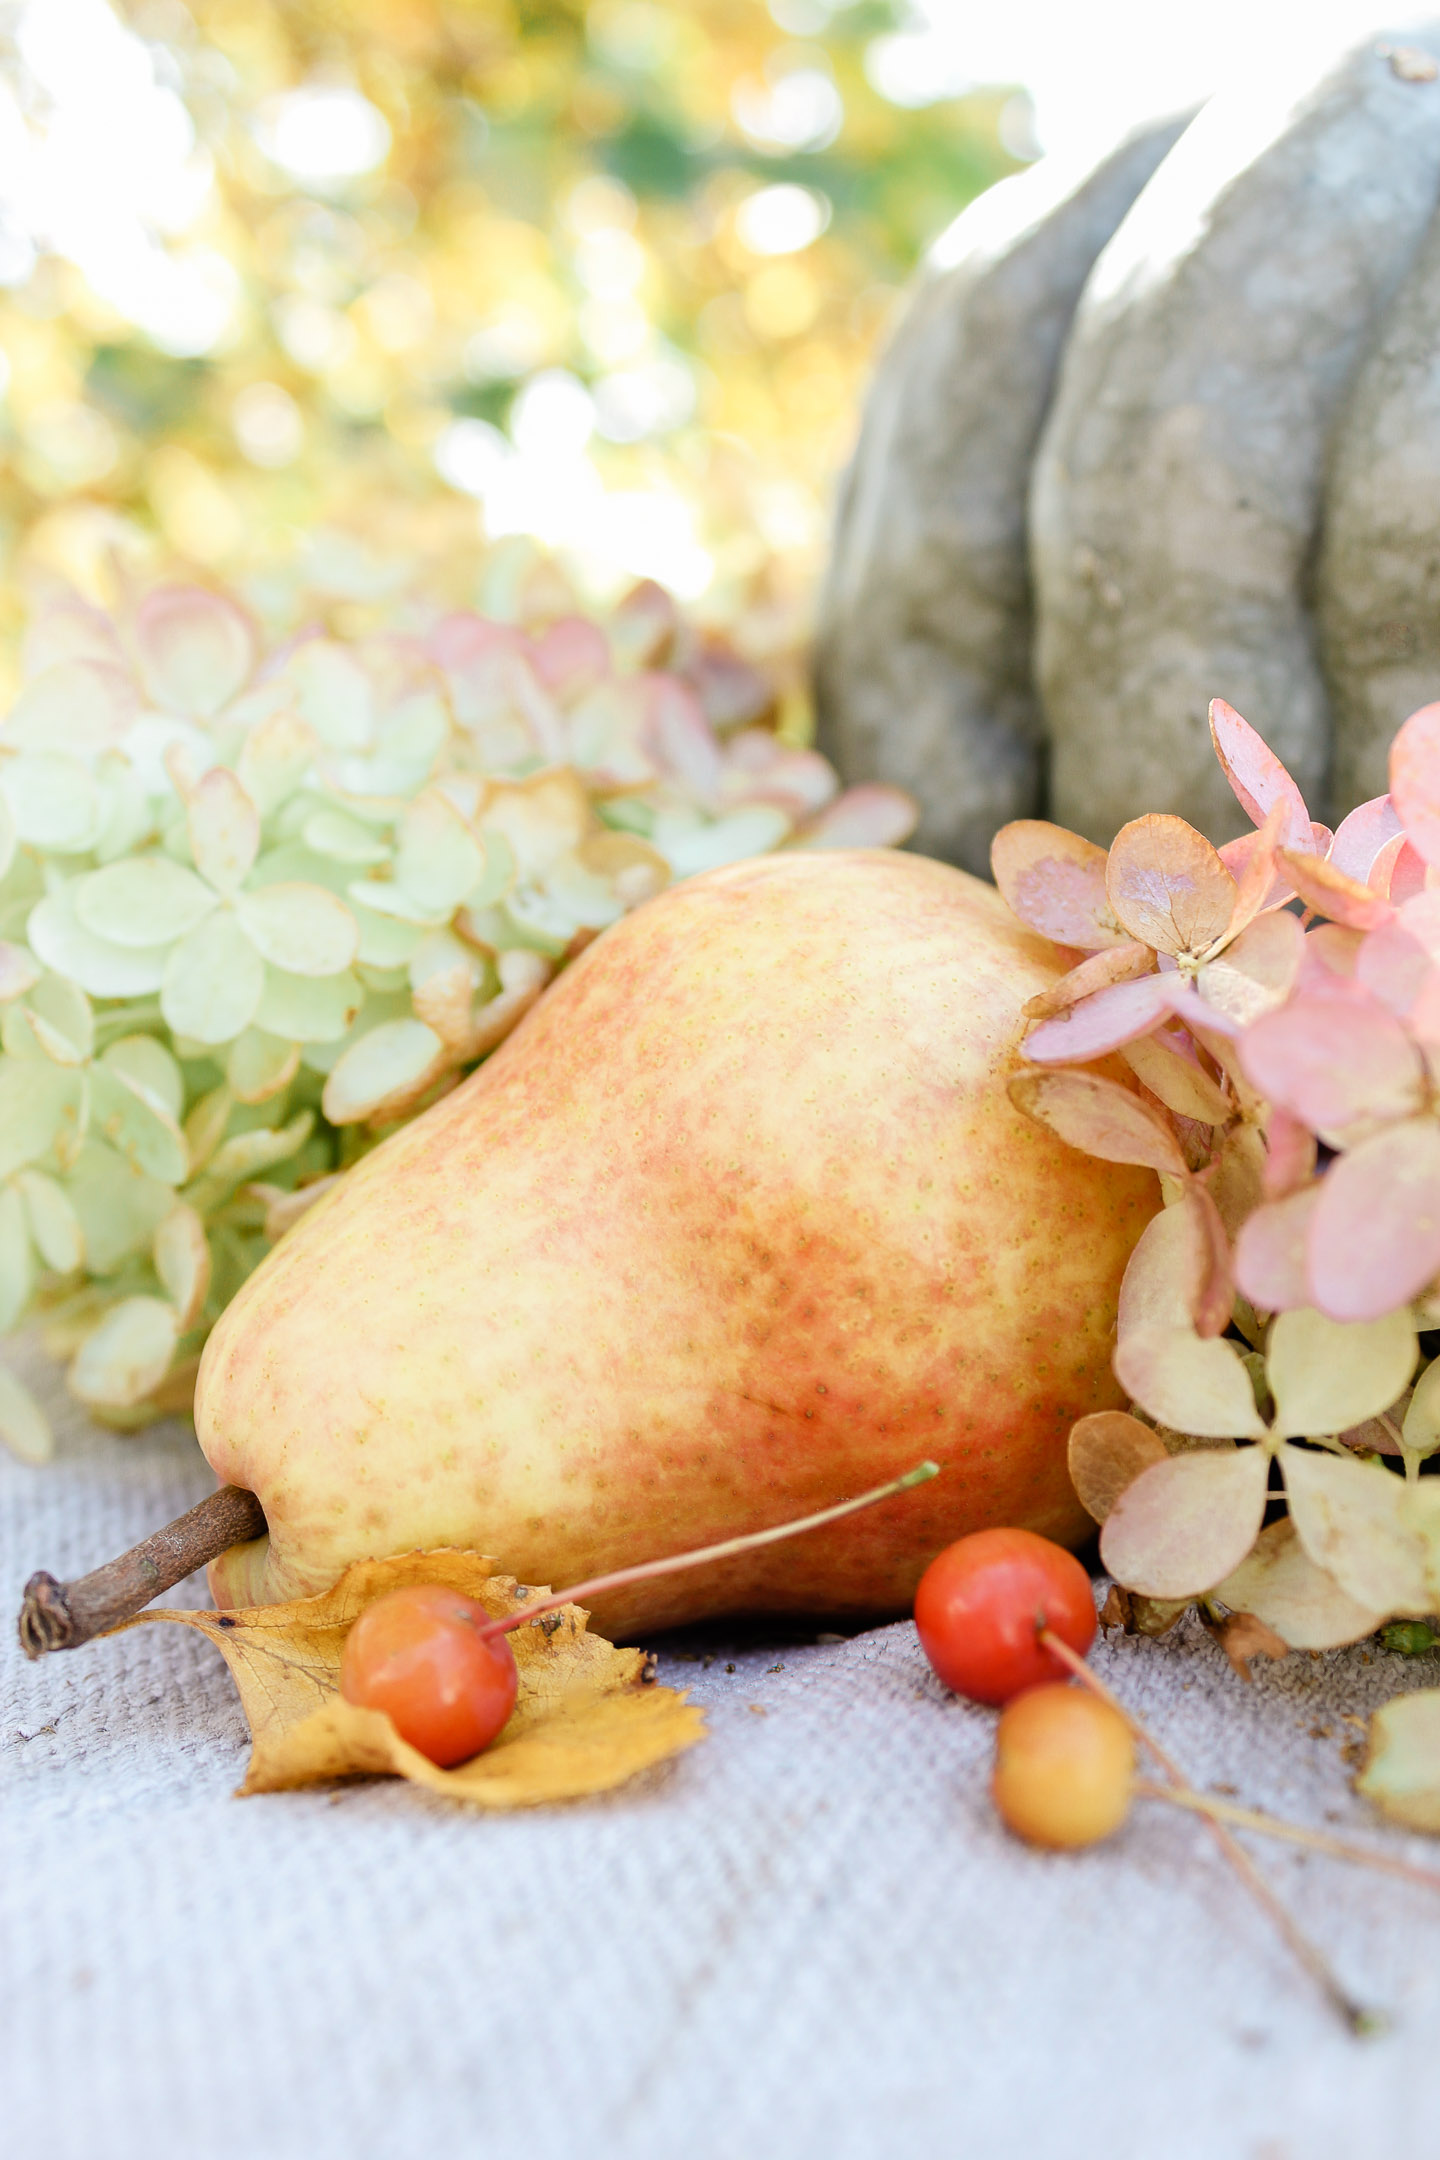 A pear surrounded by berries and hydrangea blossoms.